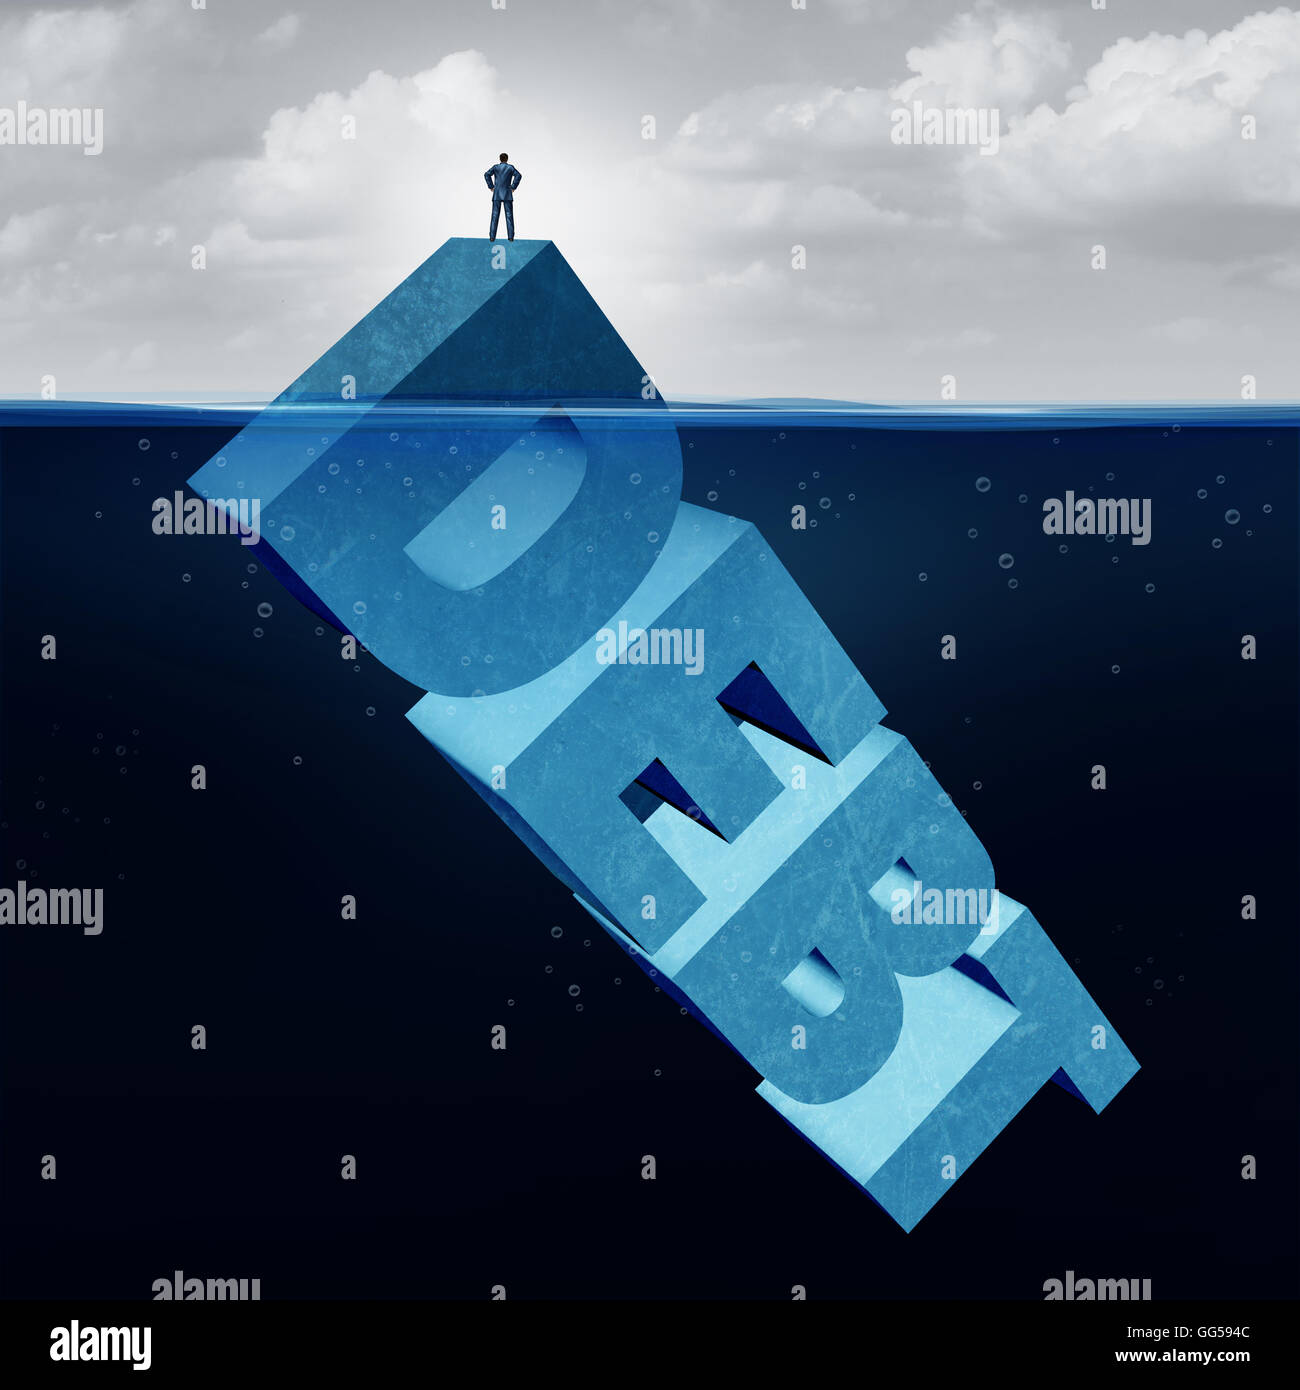 Hidden debt business and unknown financial danger concept as a naive businessman standing on the tip of an iceberg - Stock Image